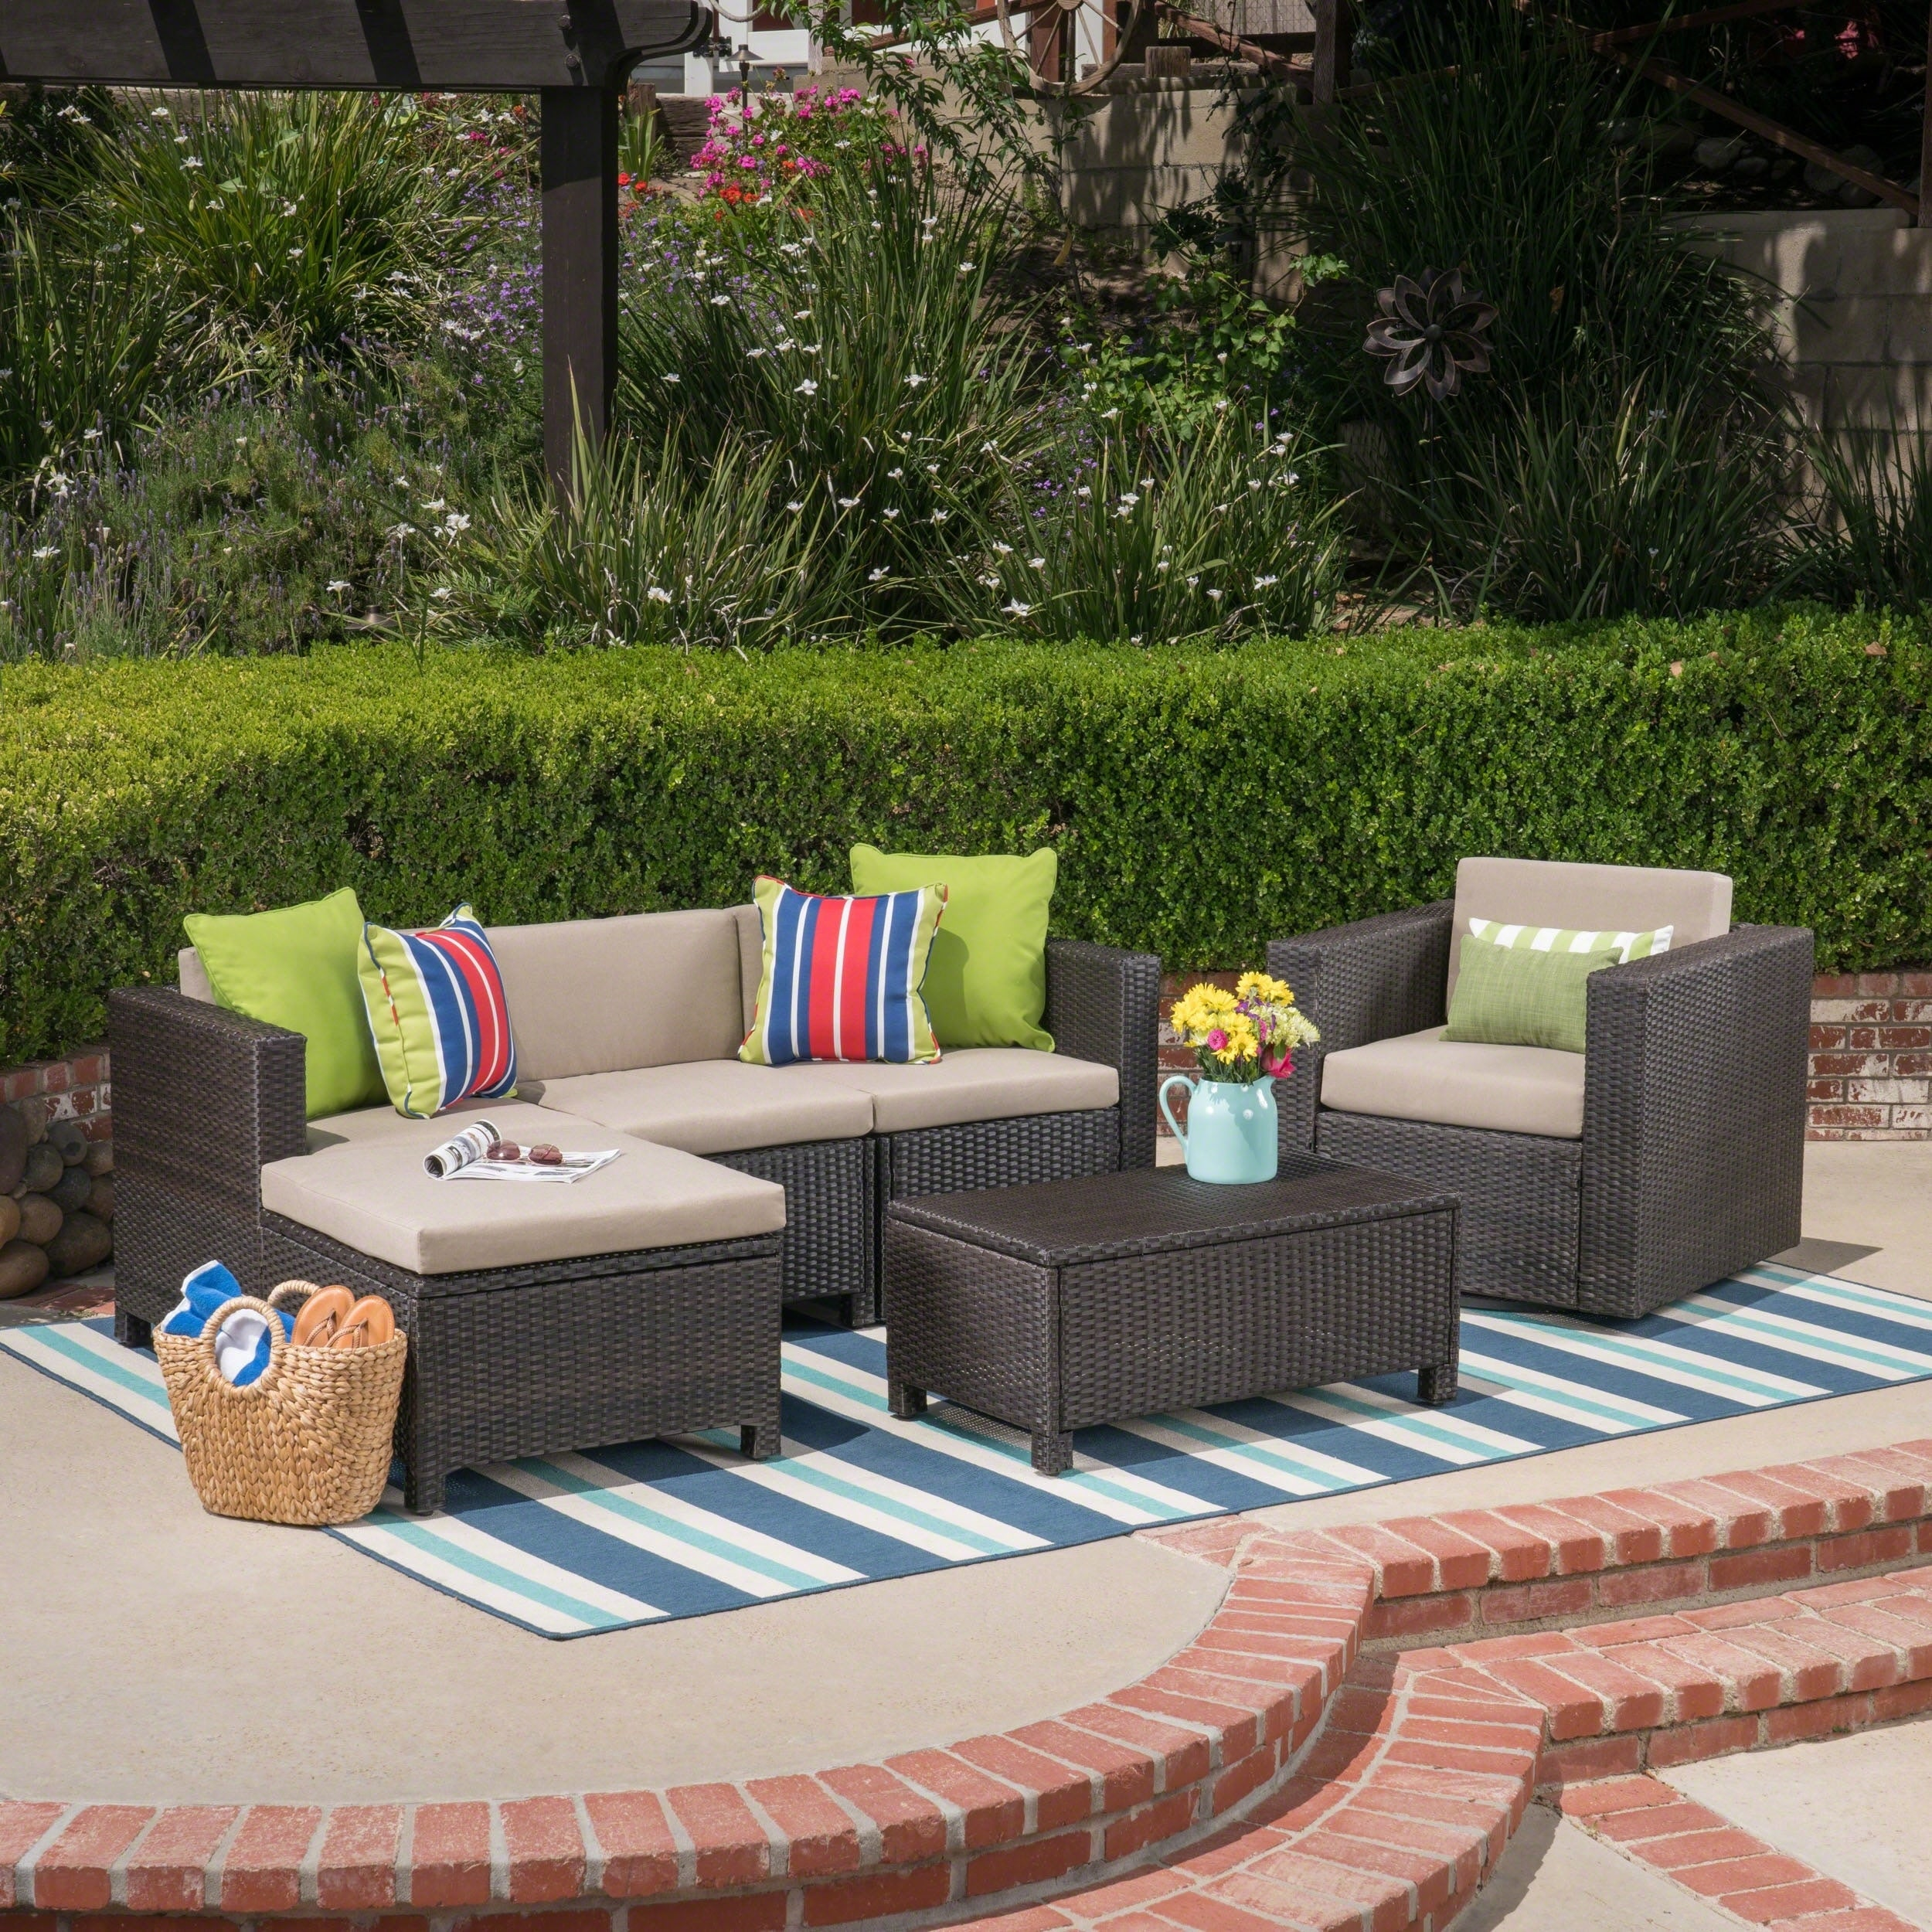 Exceptionnel Shop Puerta Outdoor 4 Seater L Shaped Sofa Set With Cushions By Christopher  Knight Home   On Sale   Free Shipping Today   Overstock.com   22047956